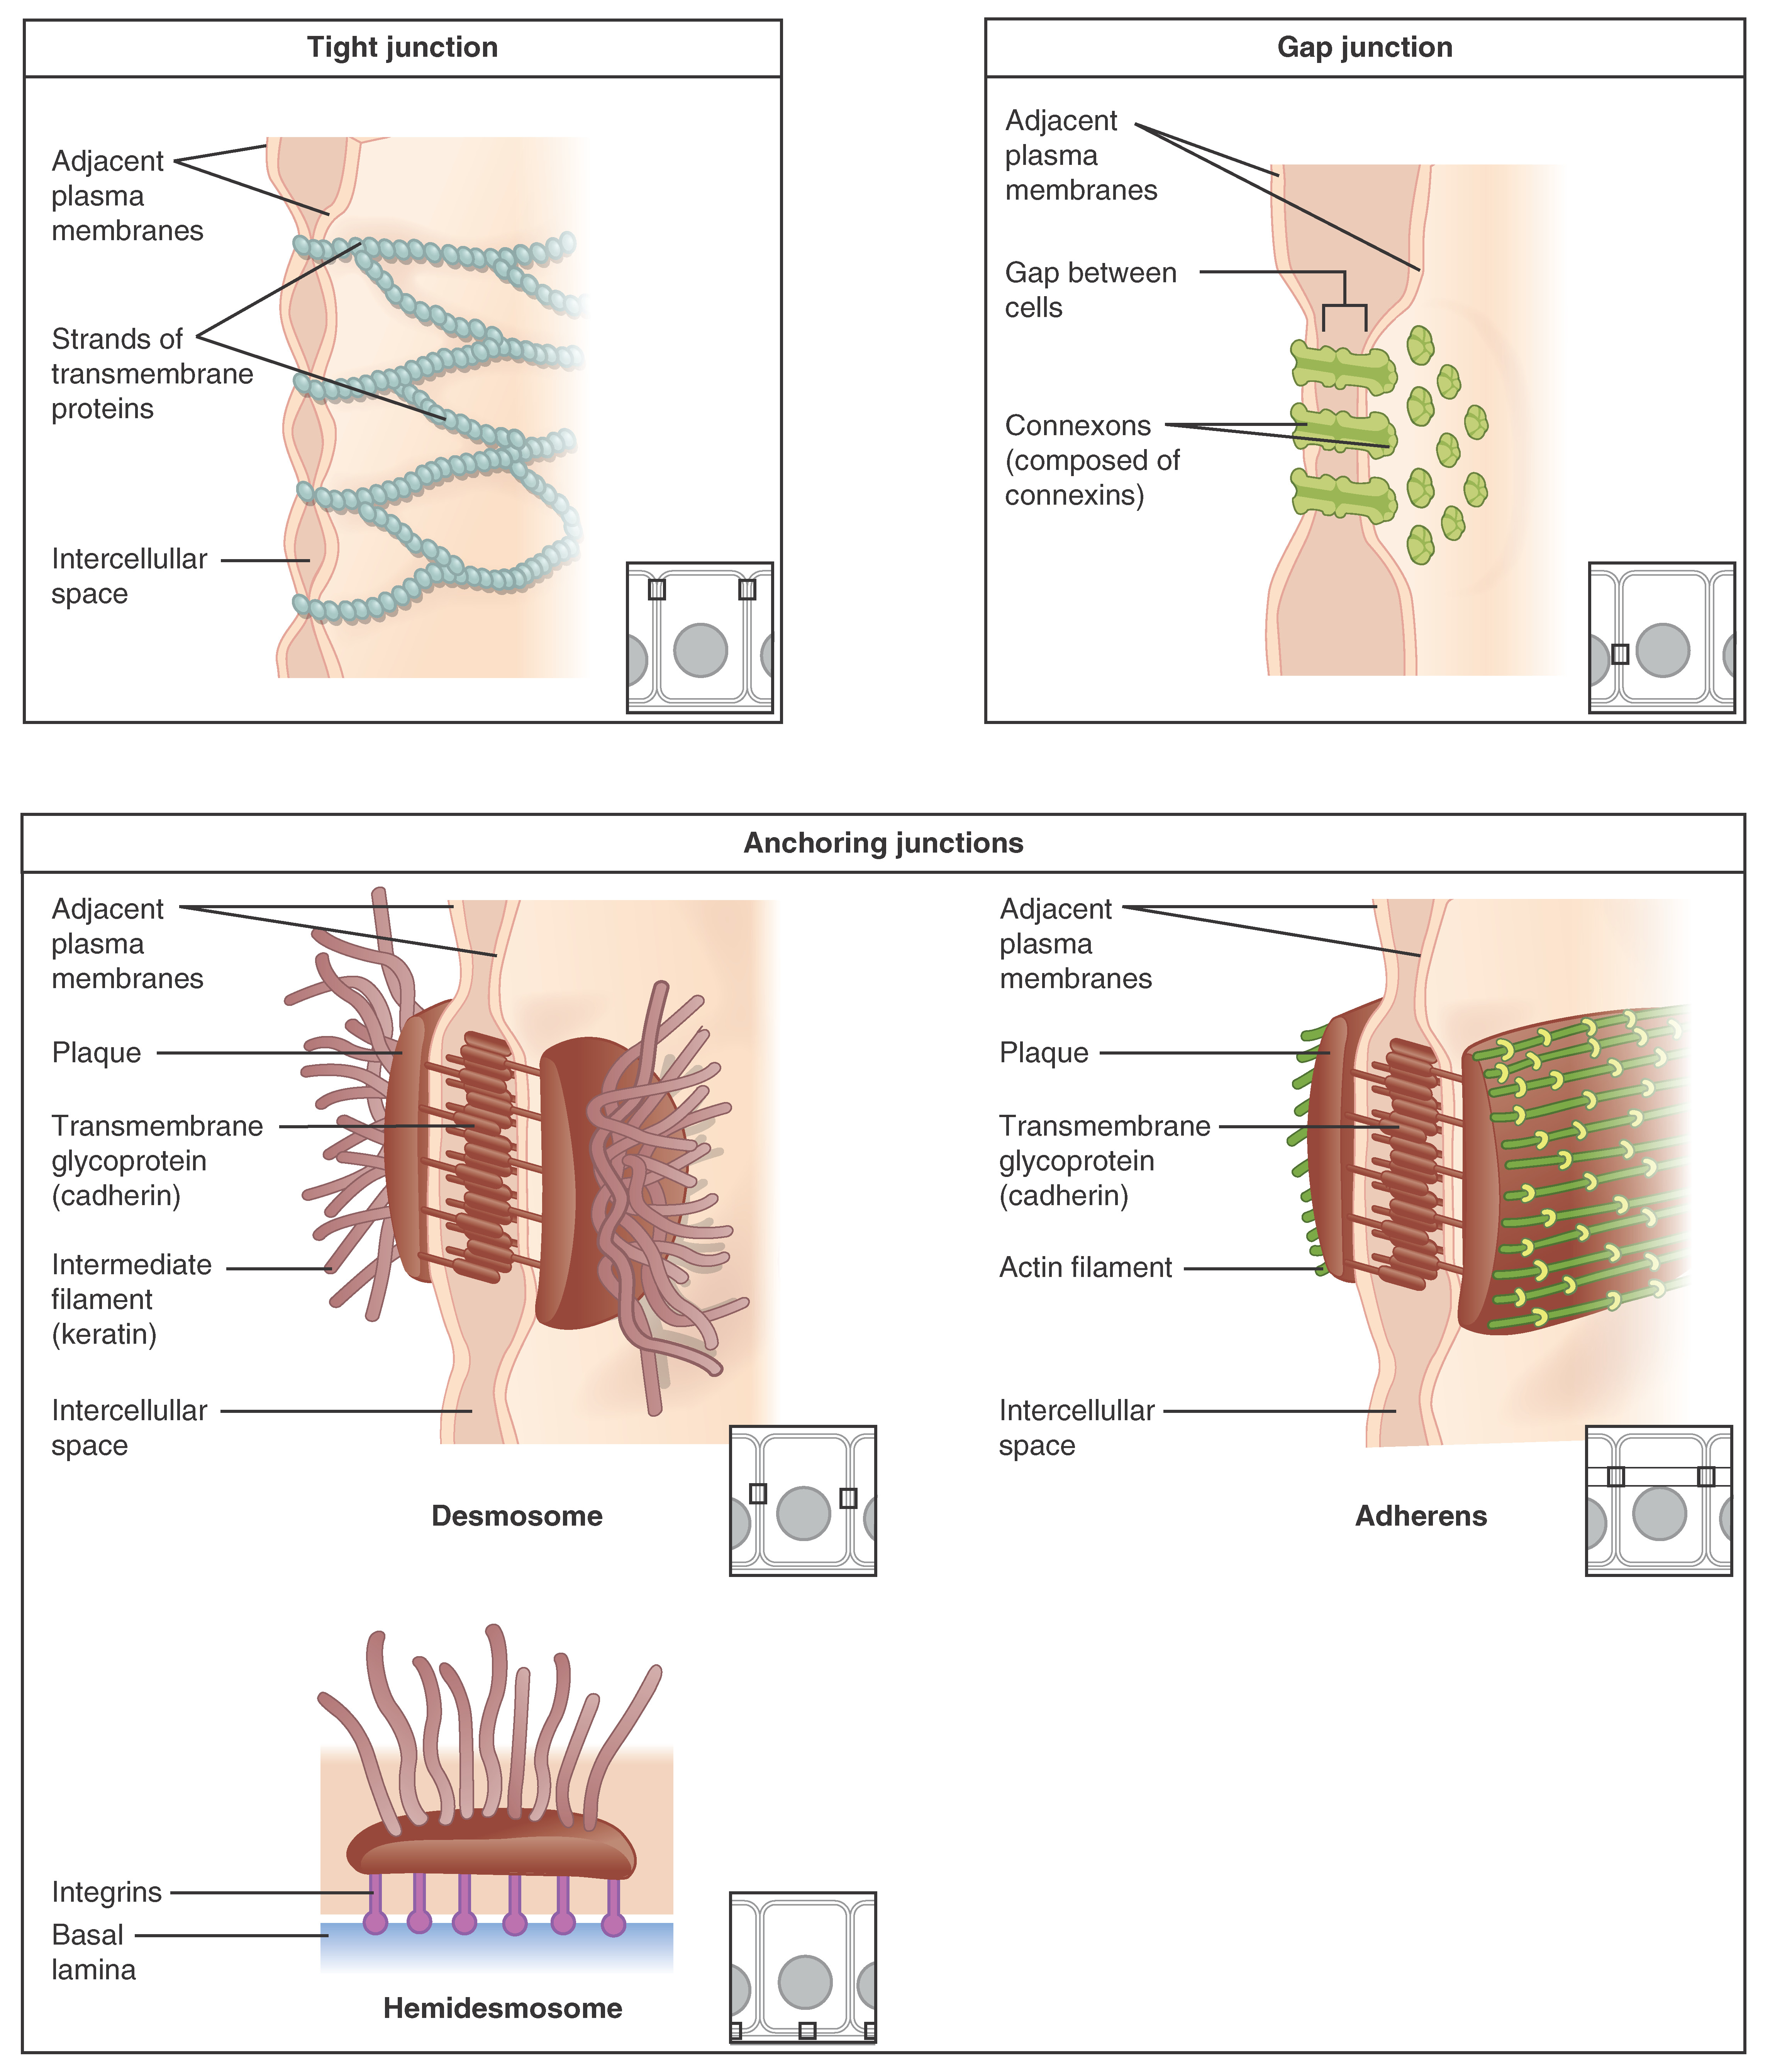 worksheet Epithelial Tissue Worksheet epithelial tissue these three illustrations each show the edges of two vertical cell membranes membranes